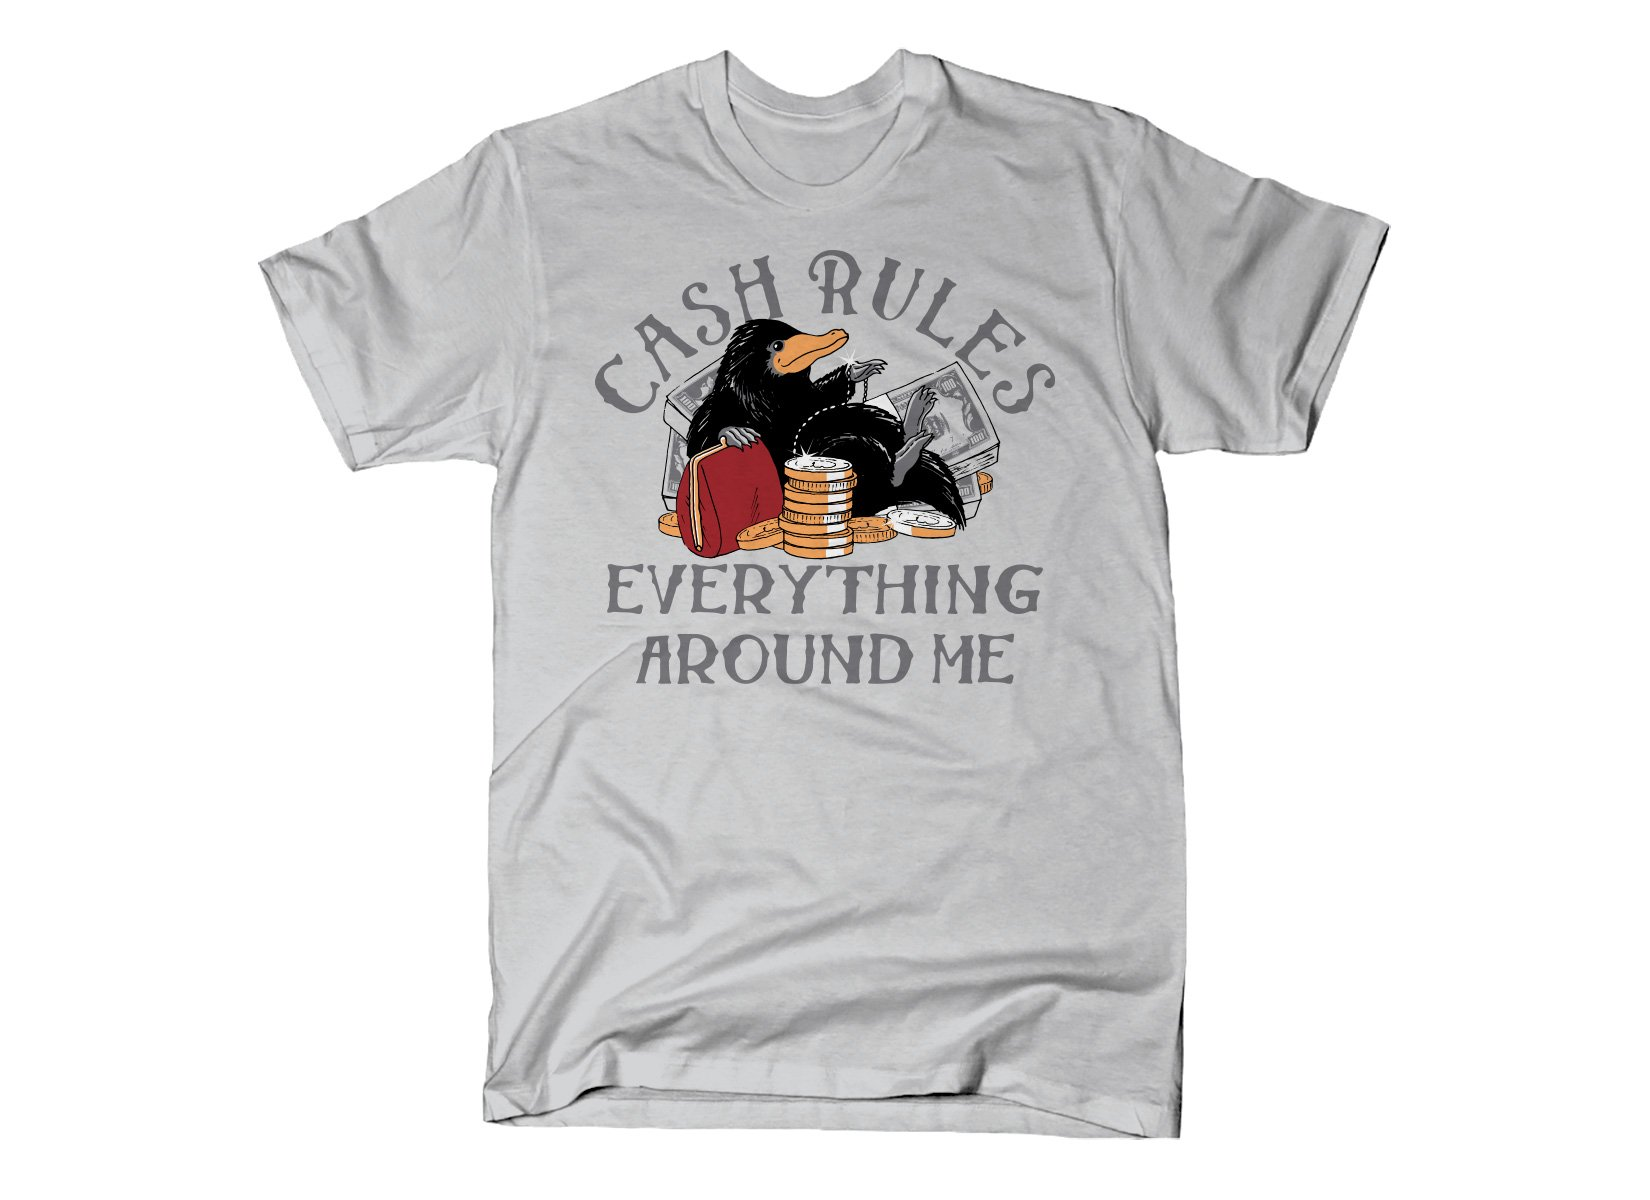 Cash Rules Everything Around Me on Mens T-Shirt